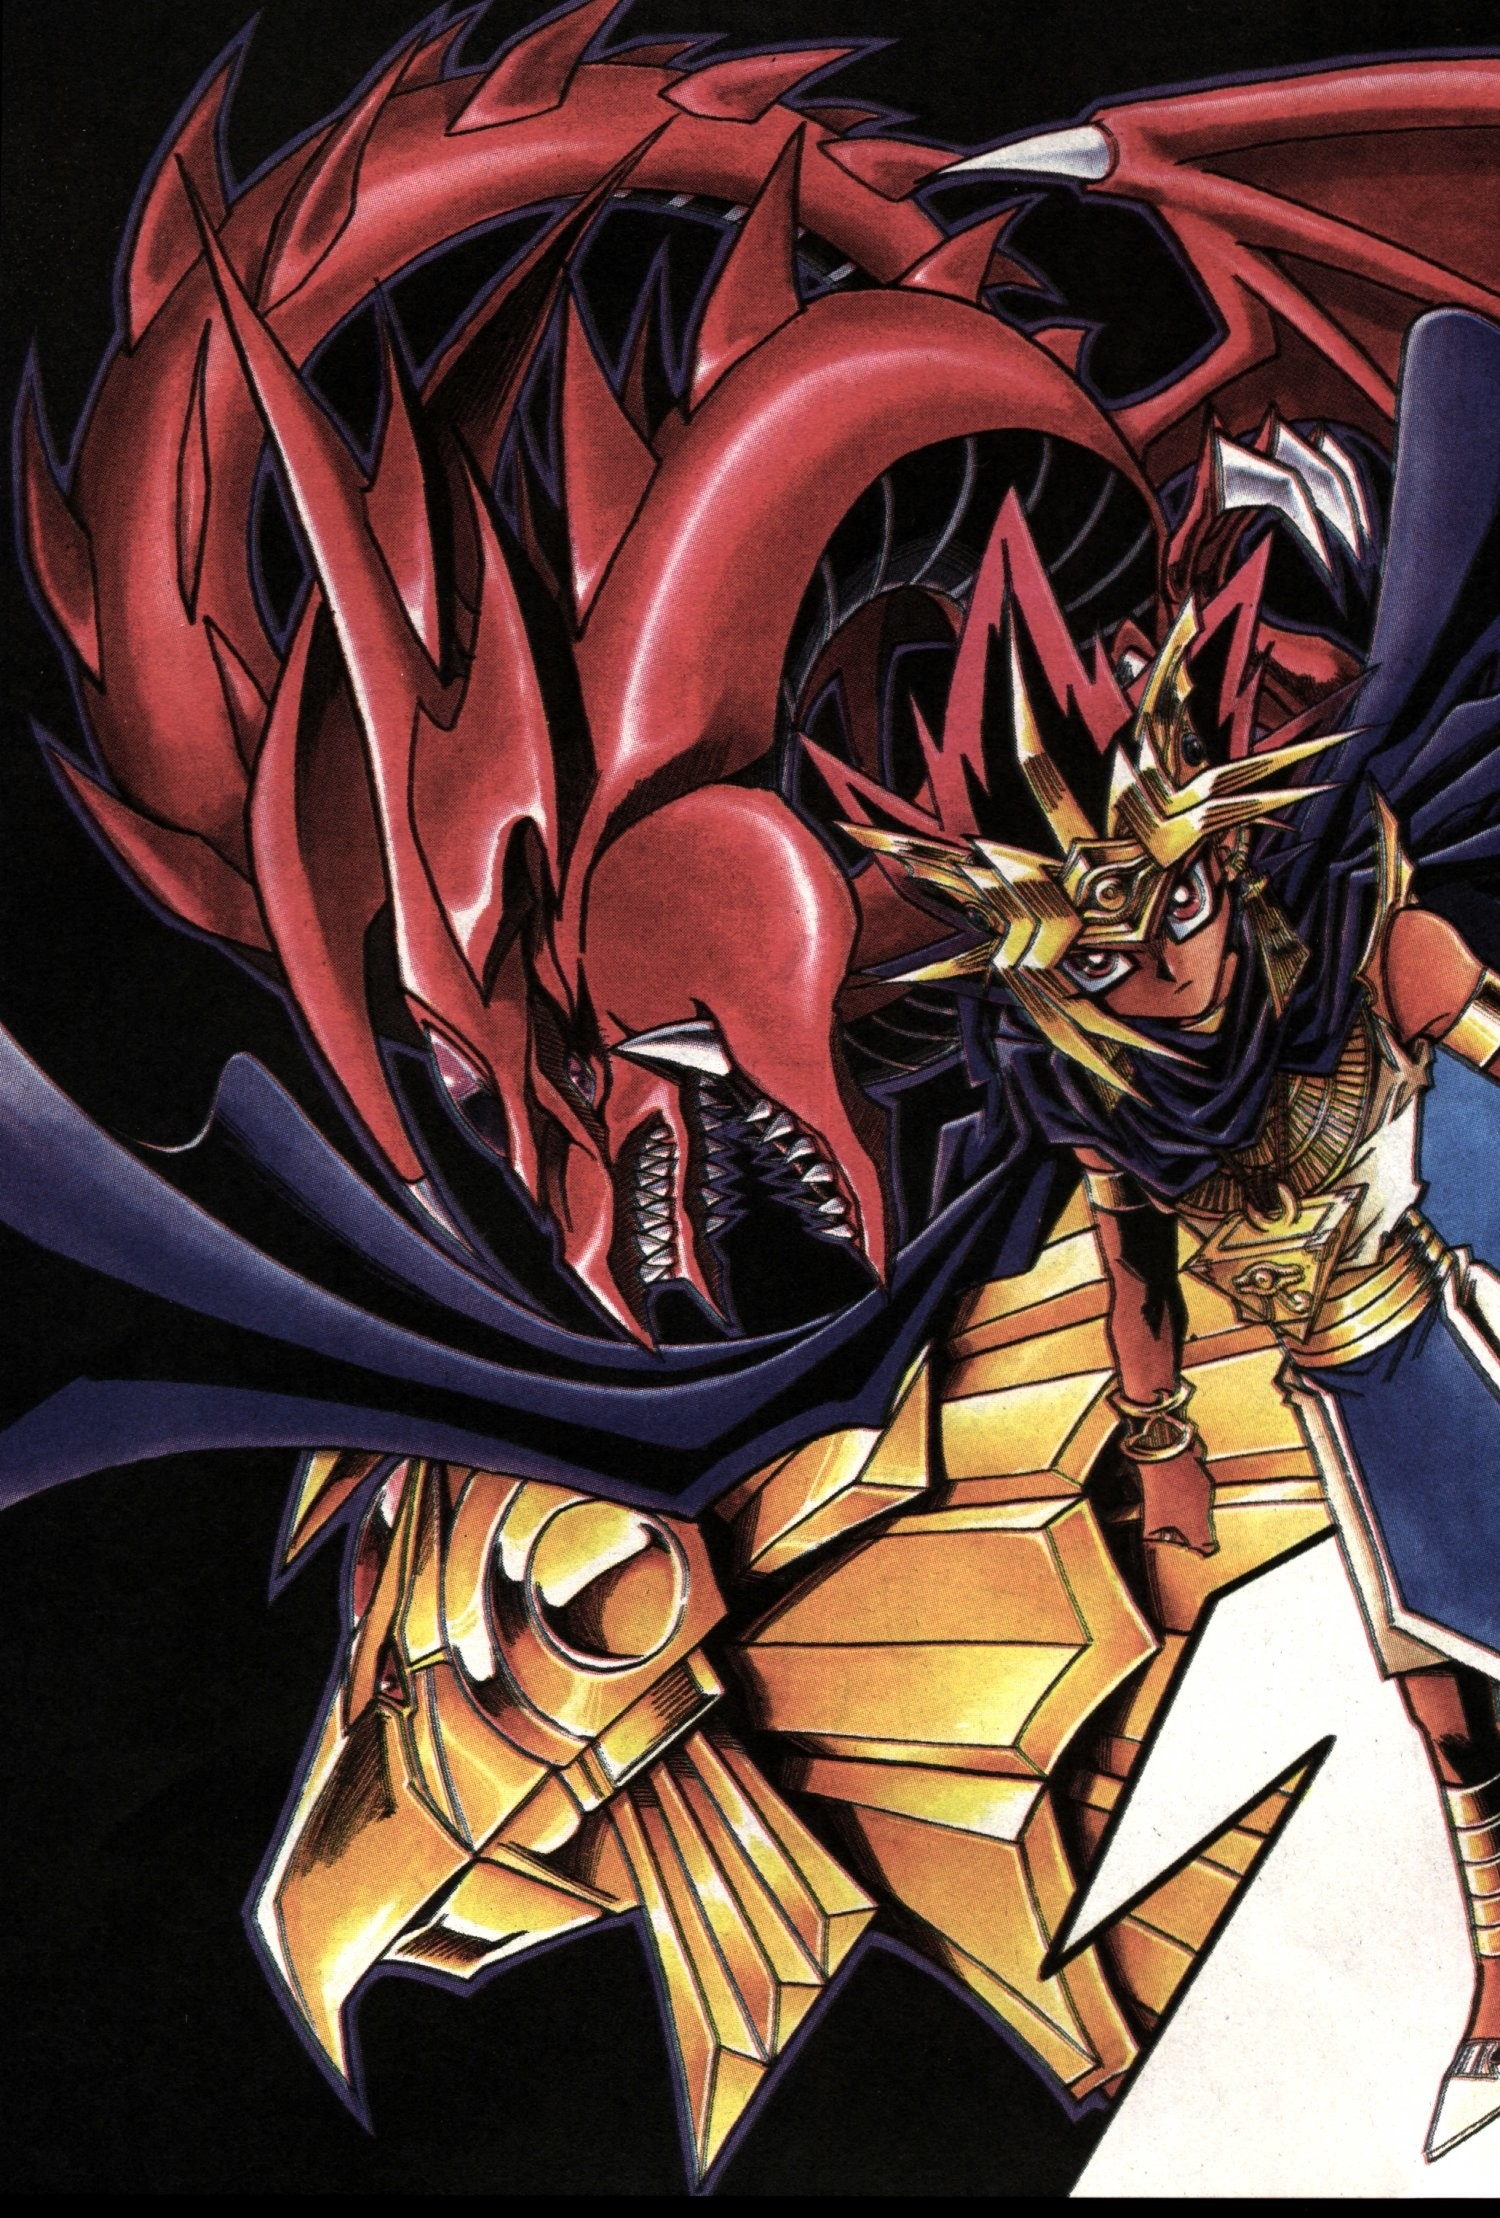 YuGiOh Backgrounds Wallpapers HD